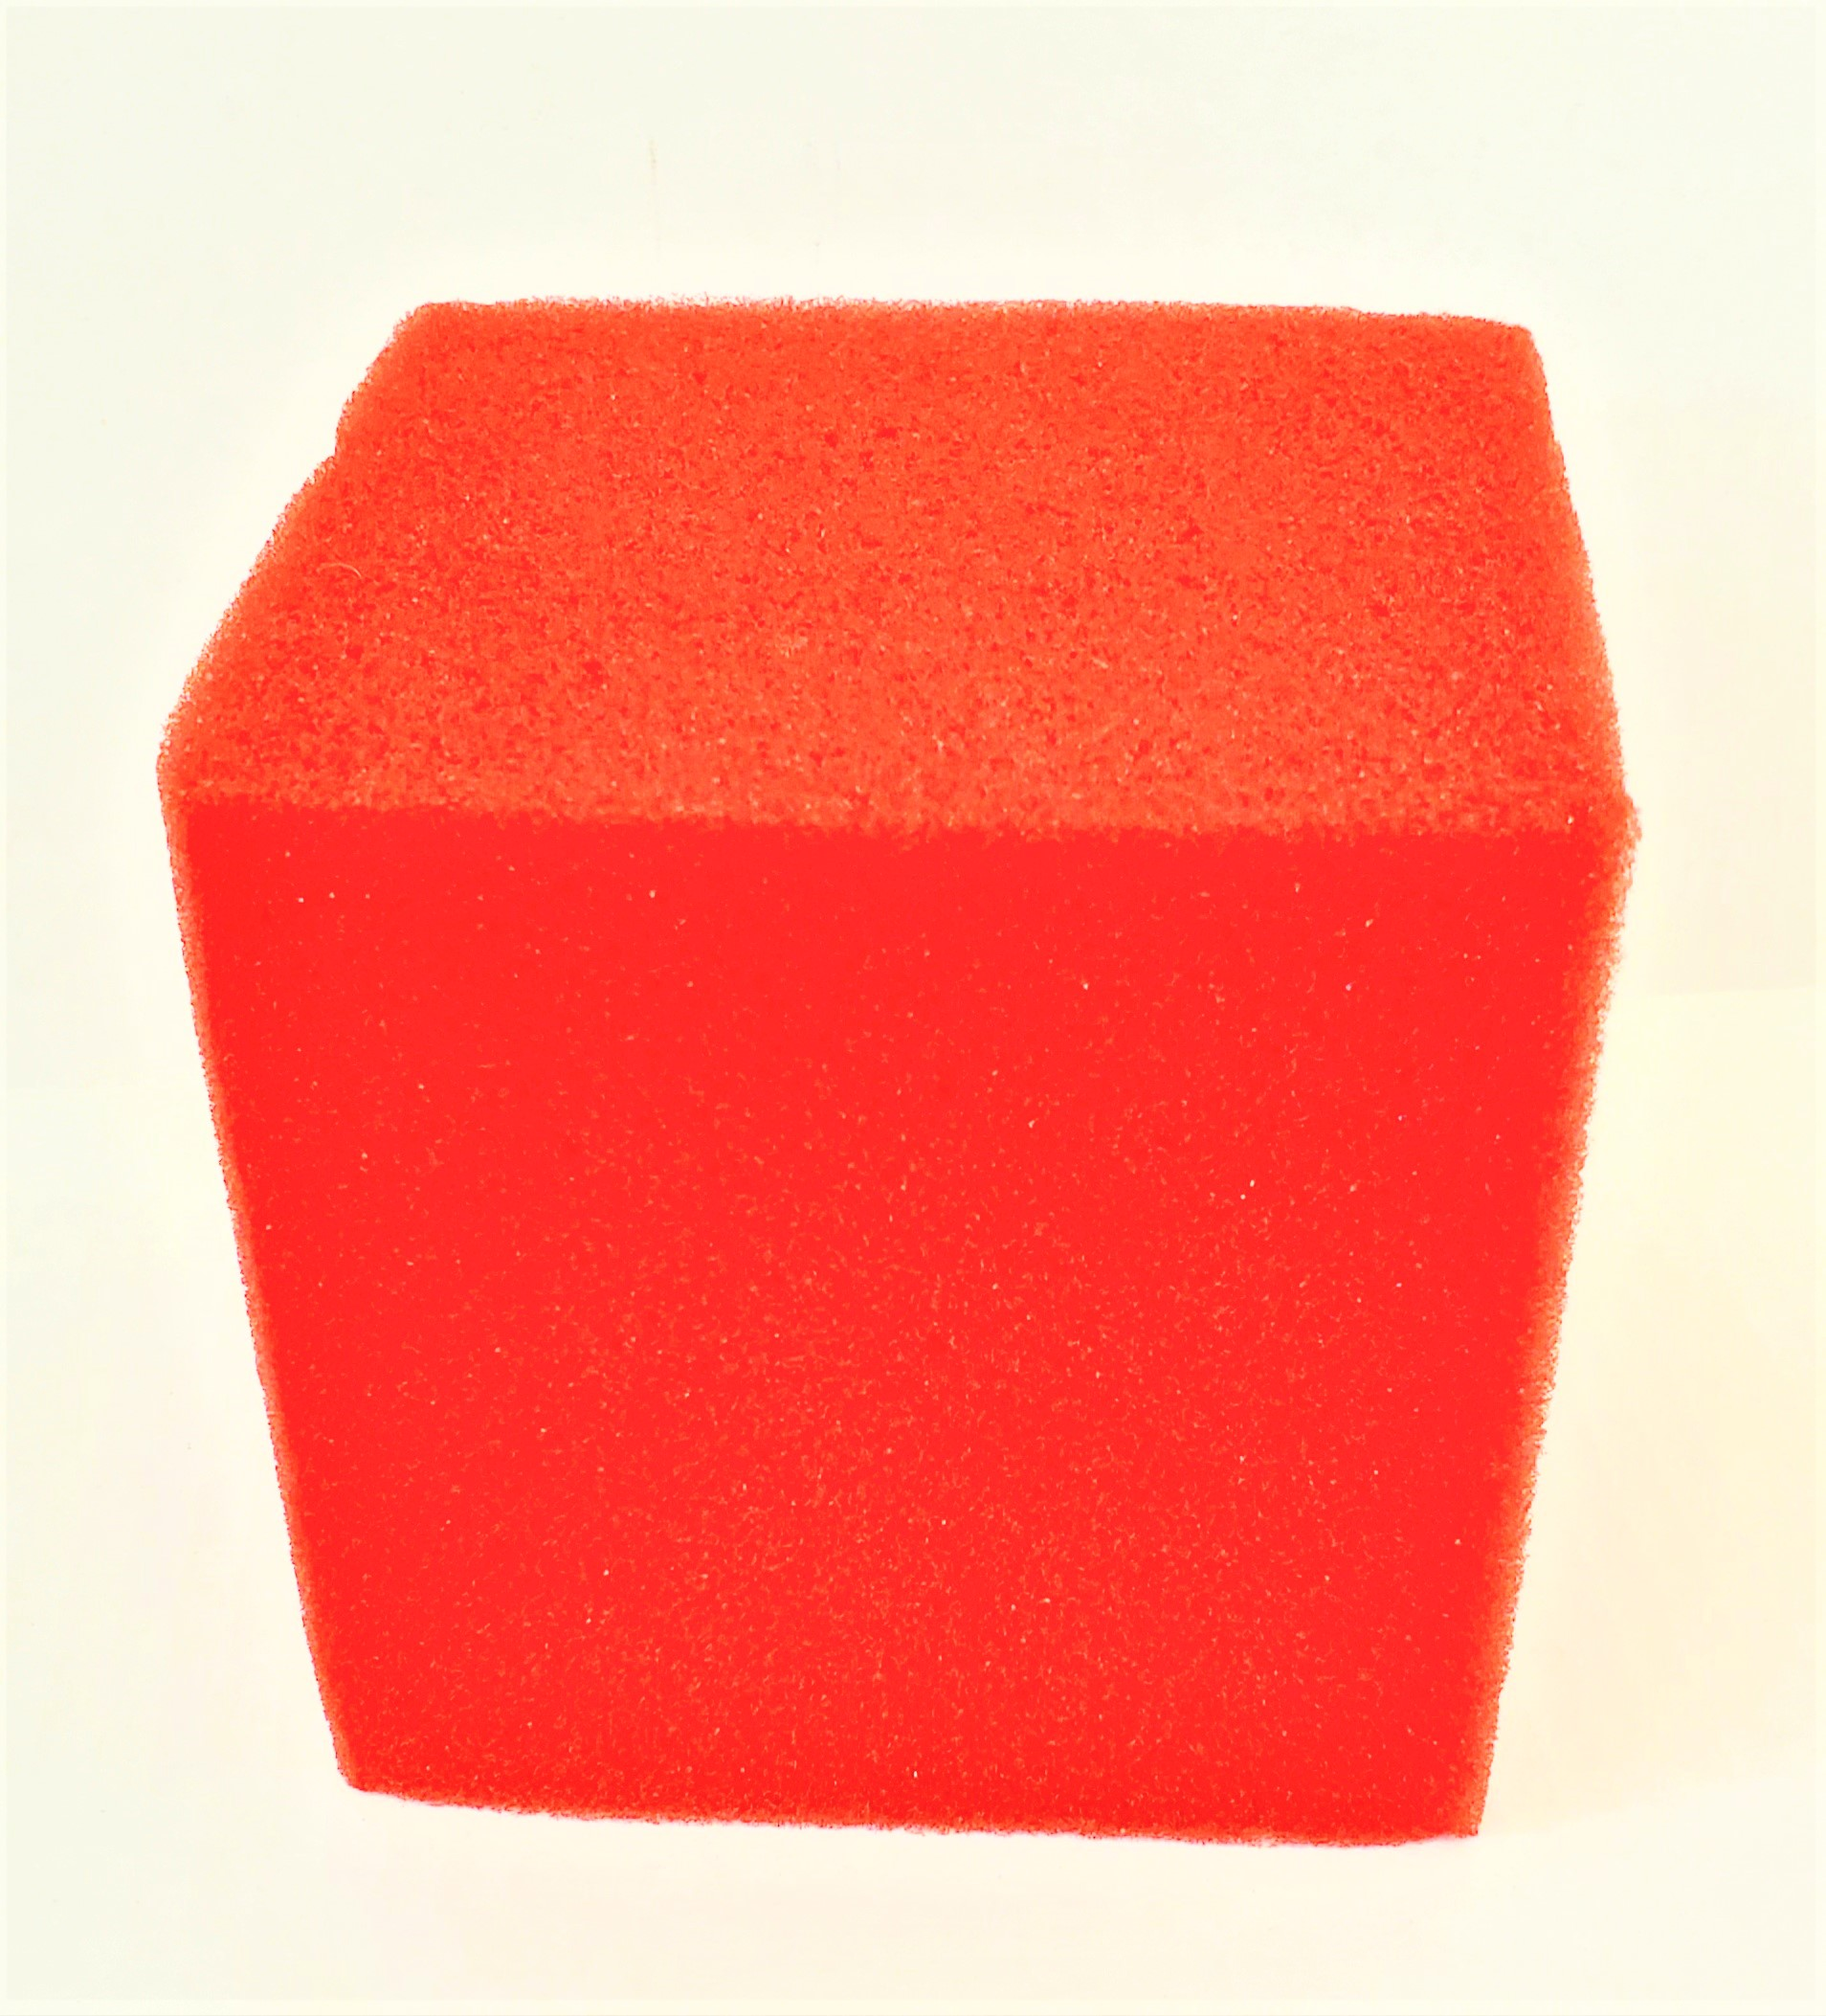 "Sponge Cube - 5"" - Supersoft - Red (Goshman)"